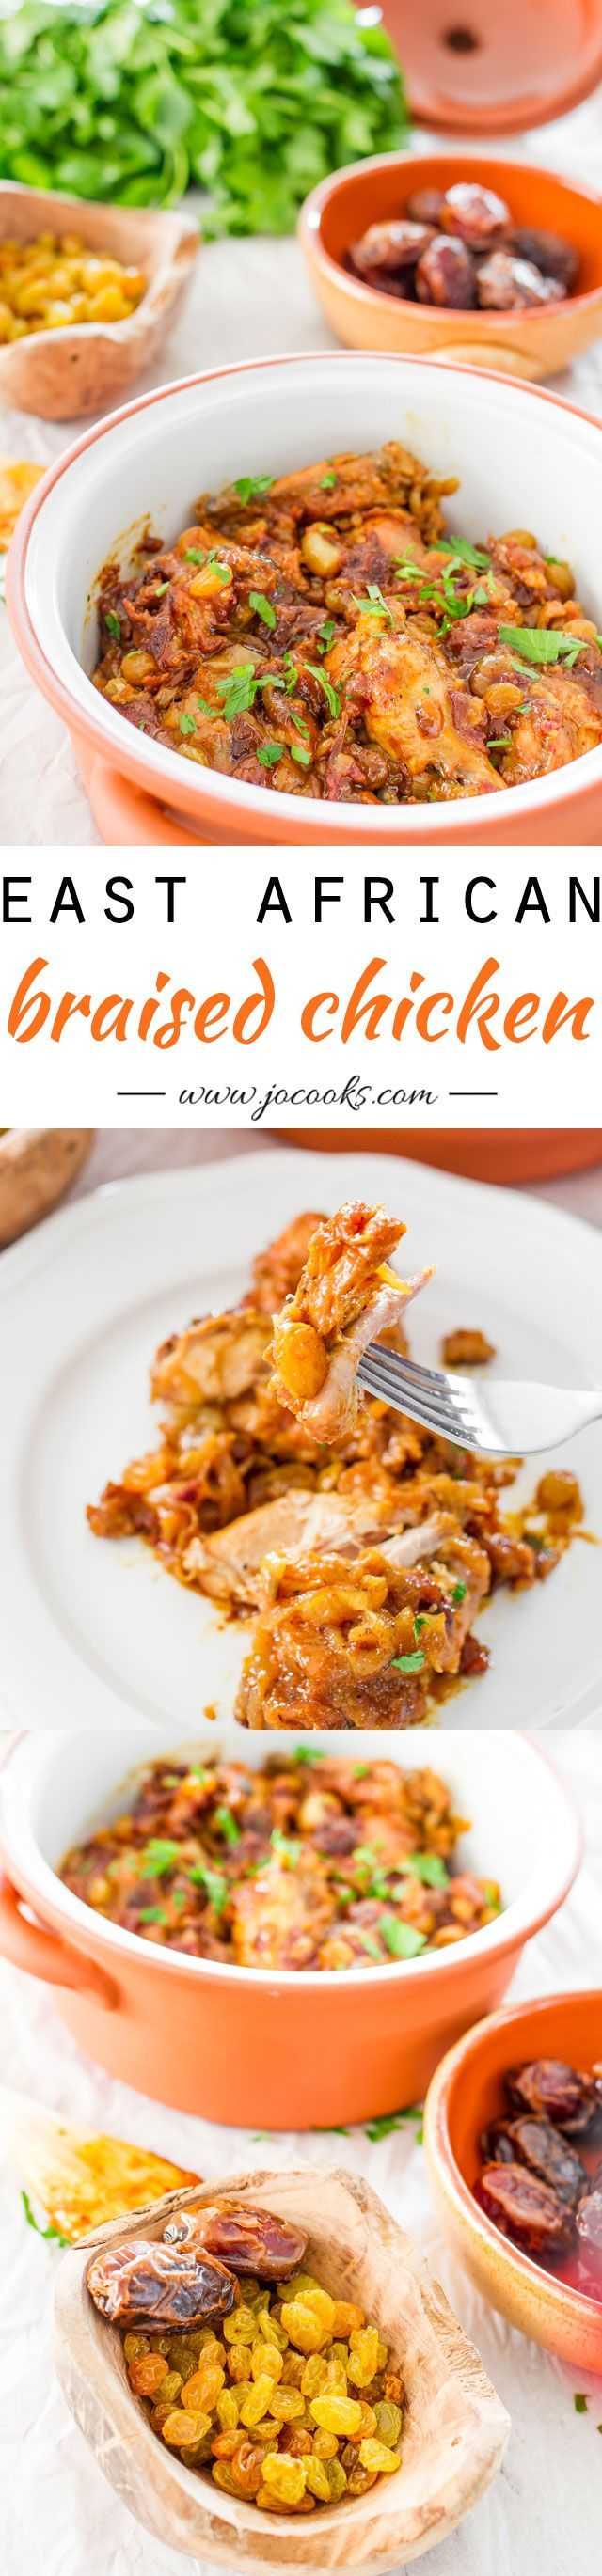 East African Braised Chicken